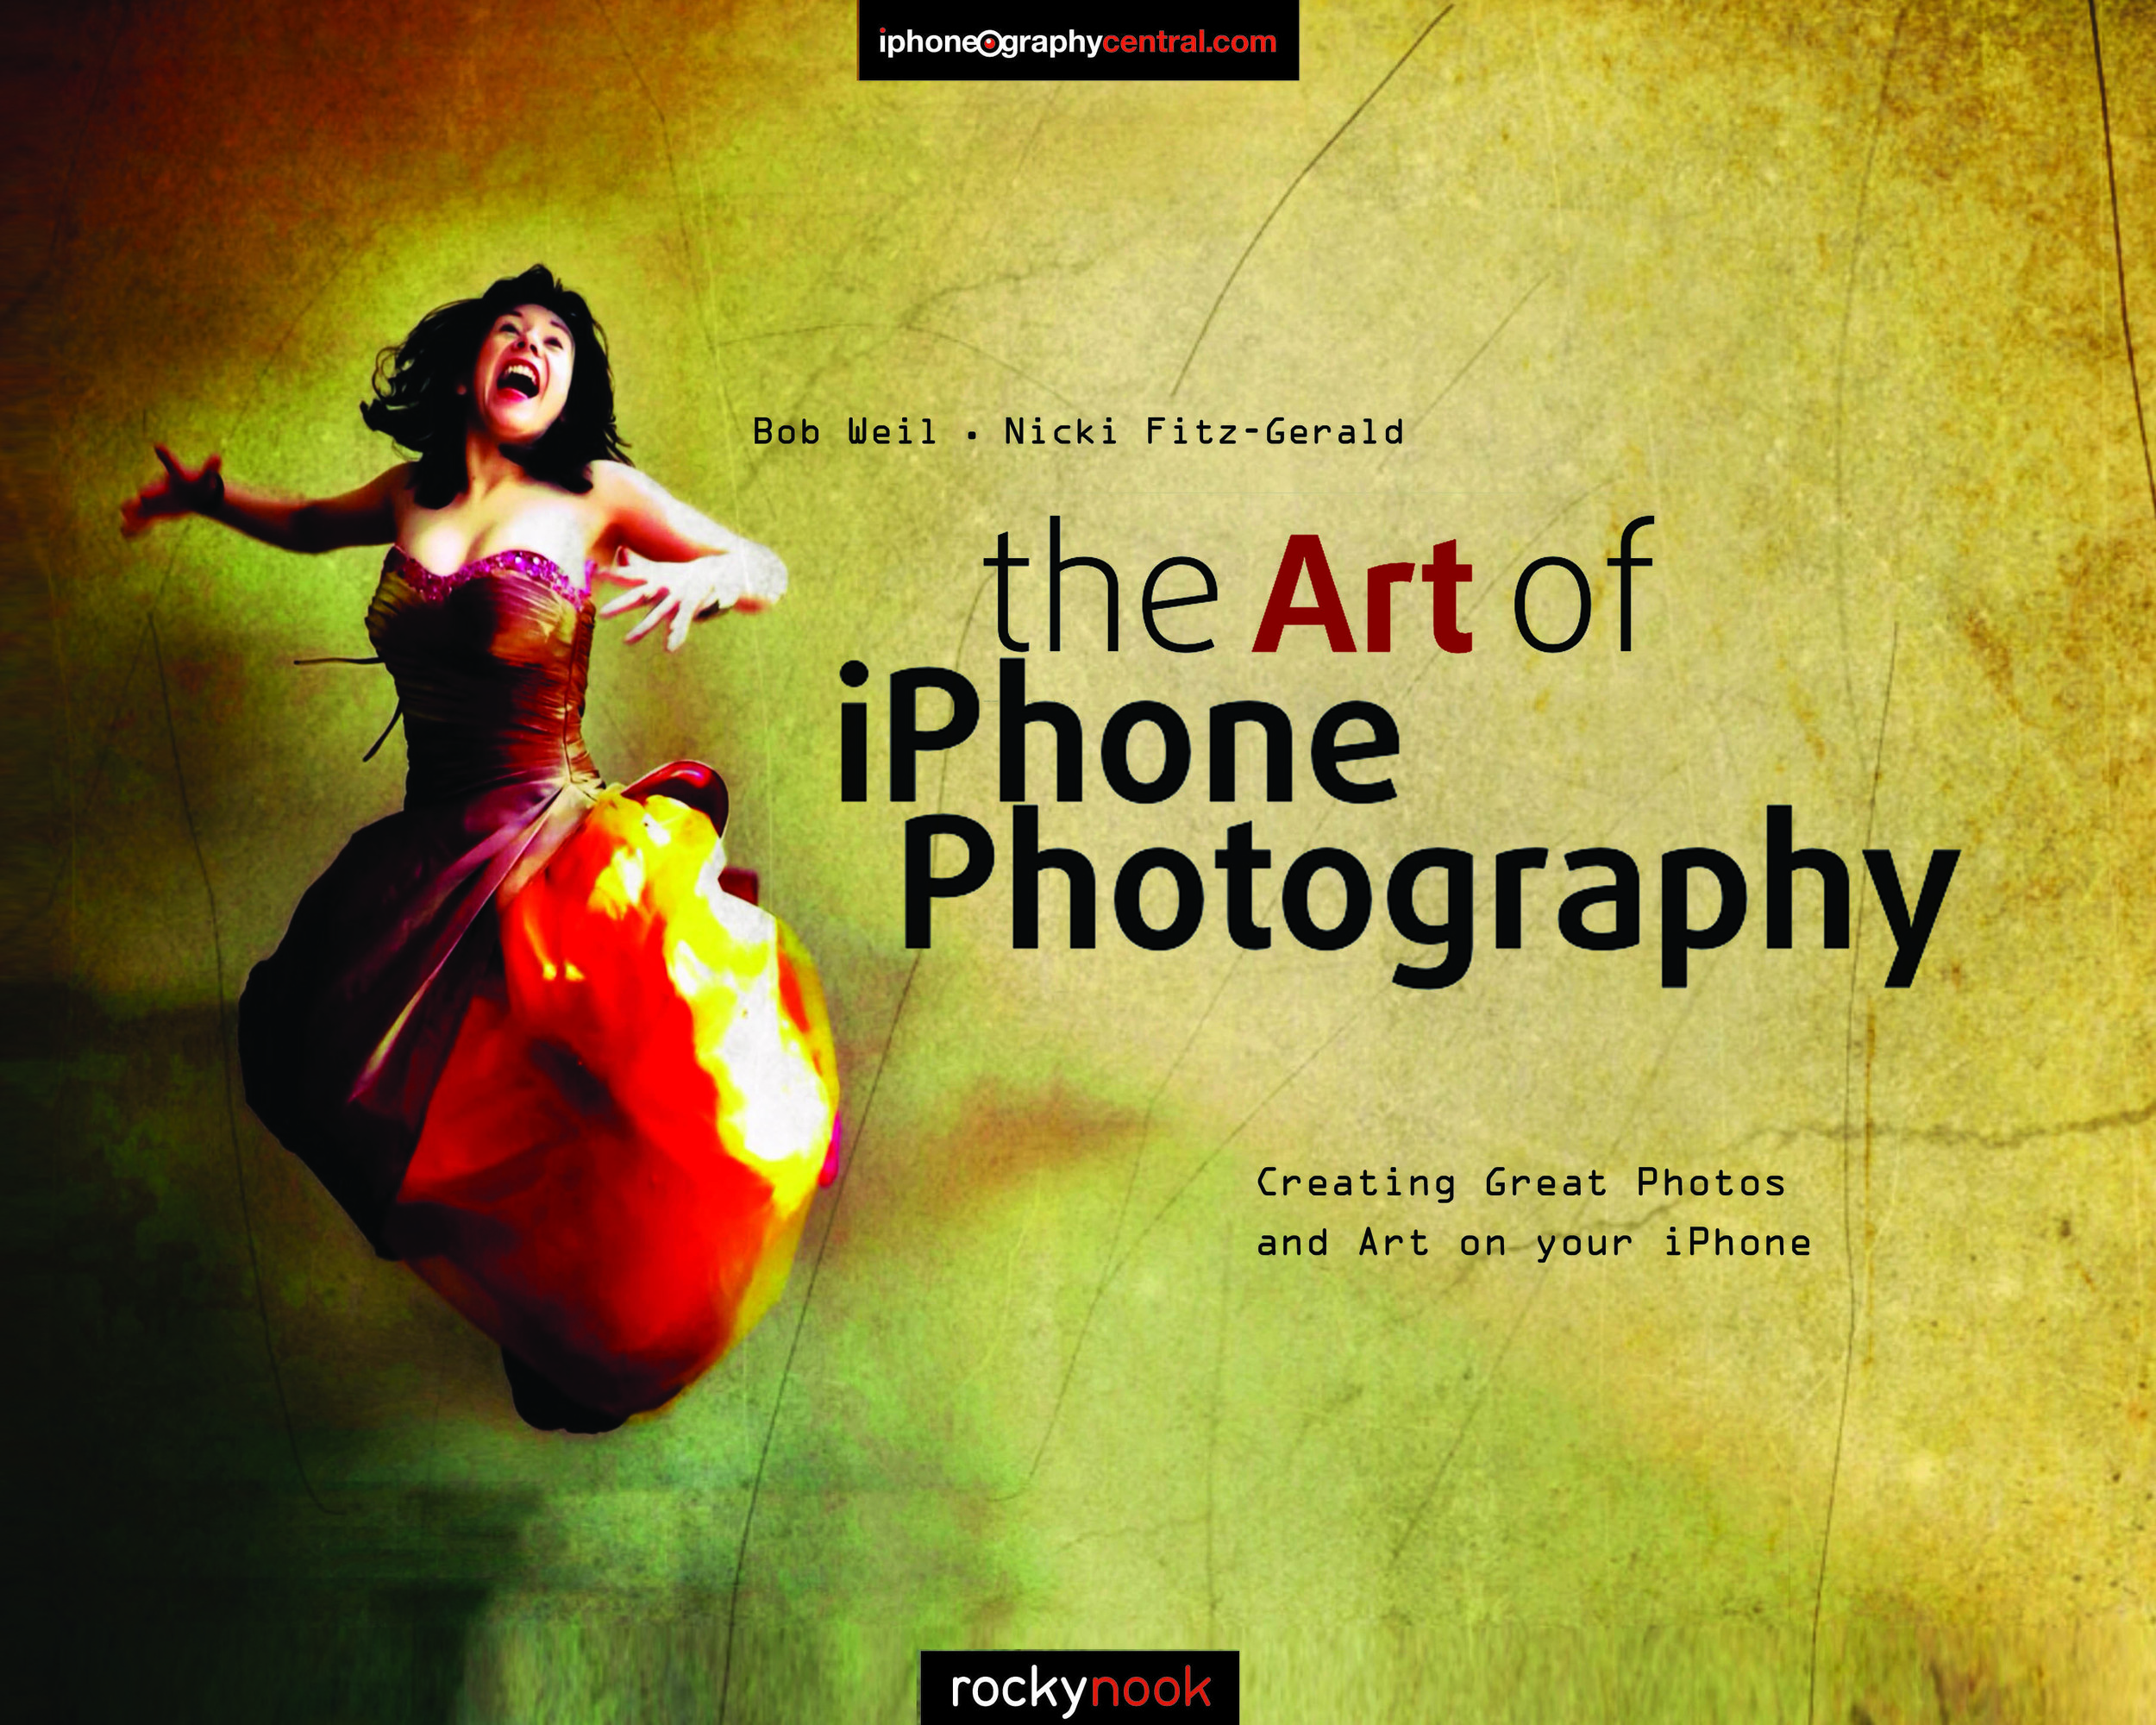 The Art of iPhone Photography by BobWeil & Nicki Fitz-Gerald